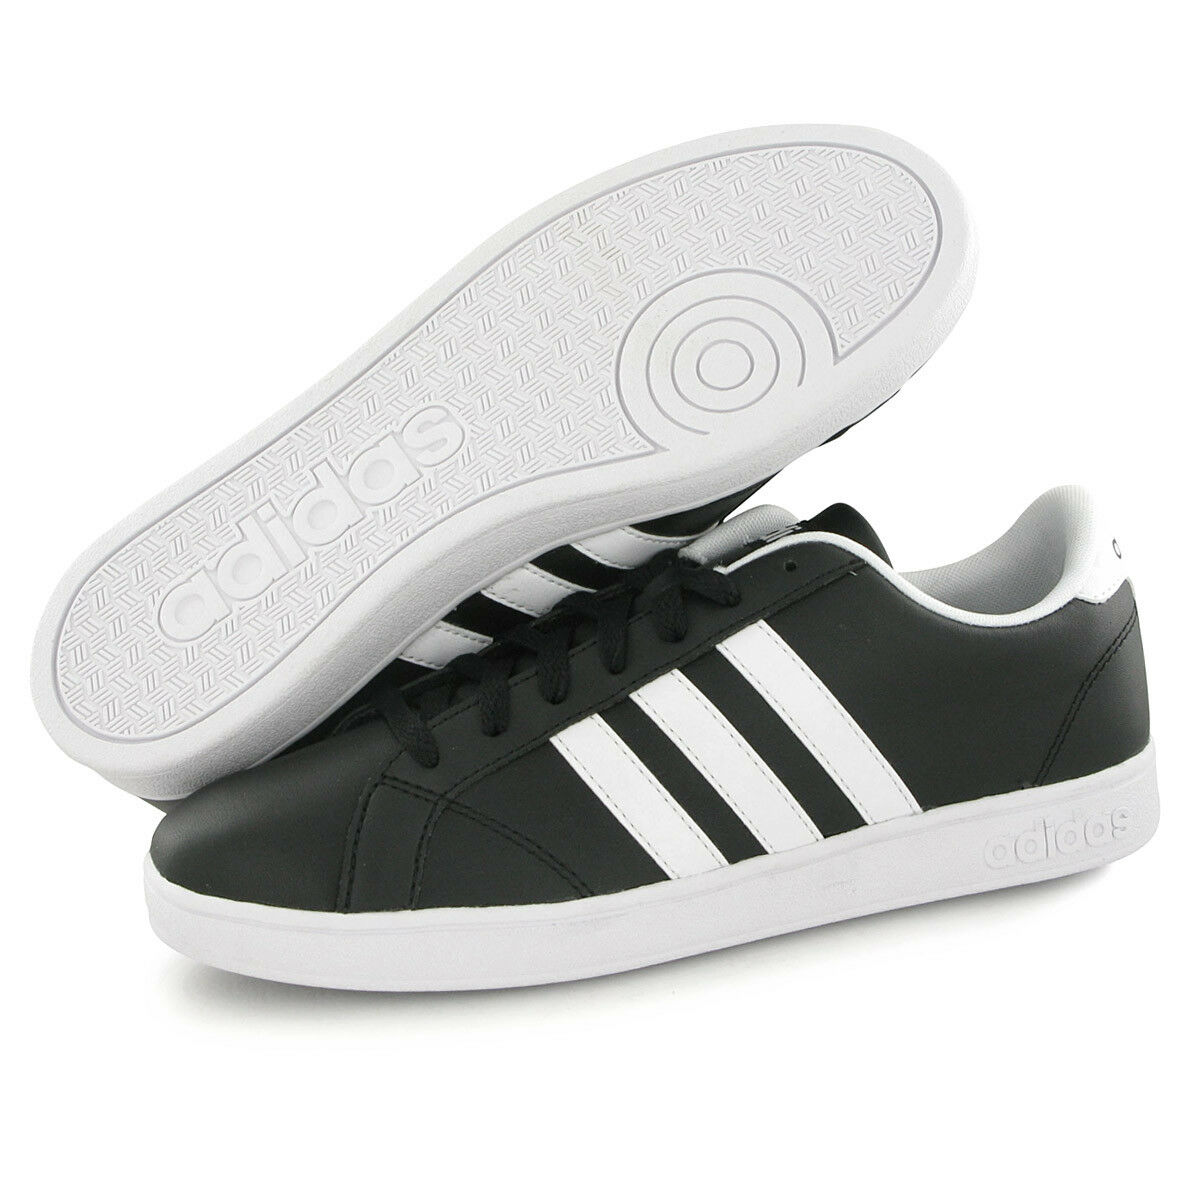 NEW adidas Baseline Low AW4617 Men''s shoes Trainers Sneakers SALE